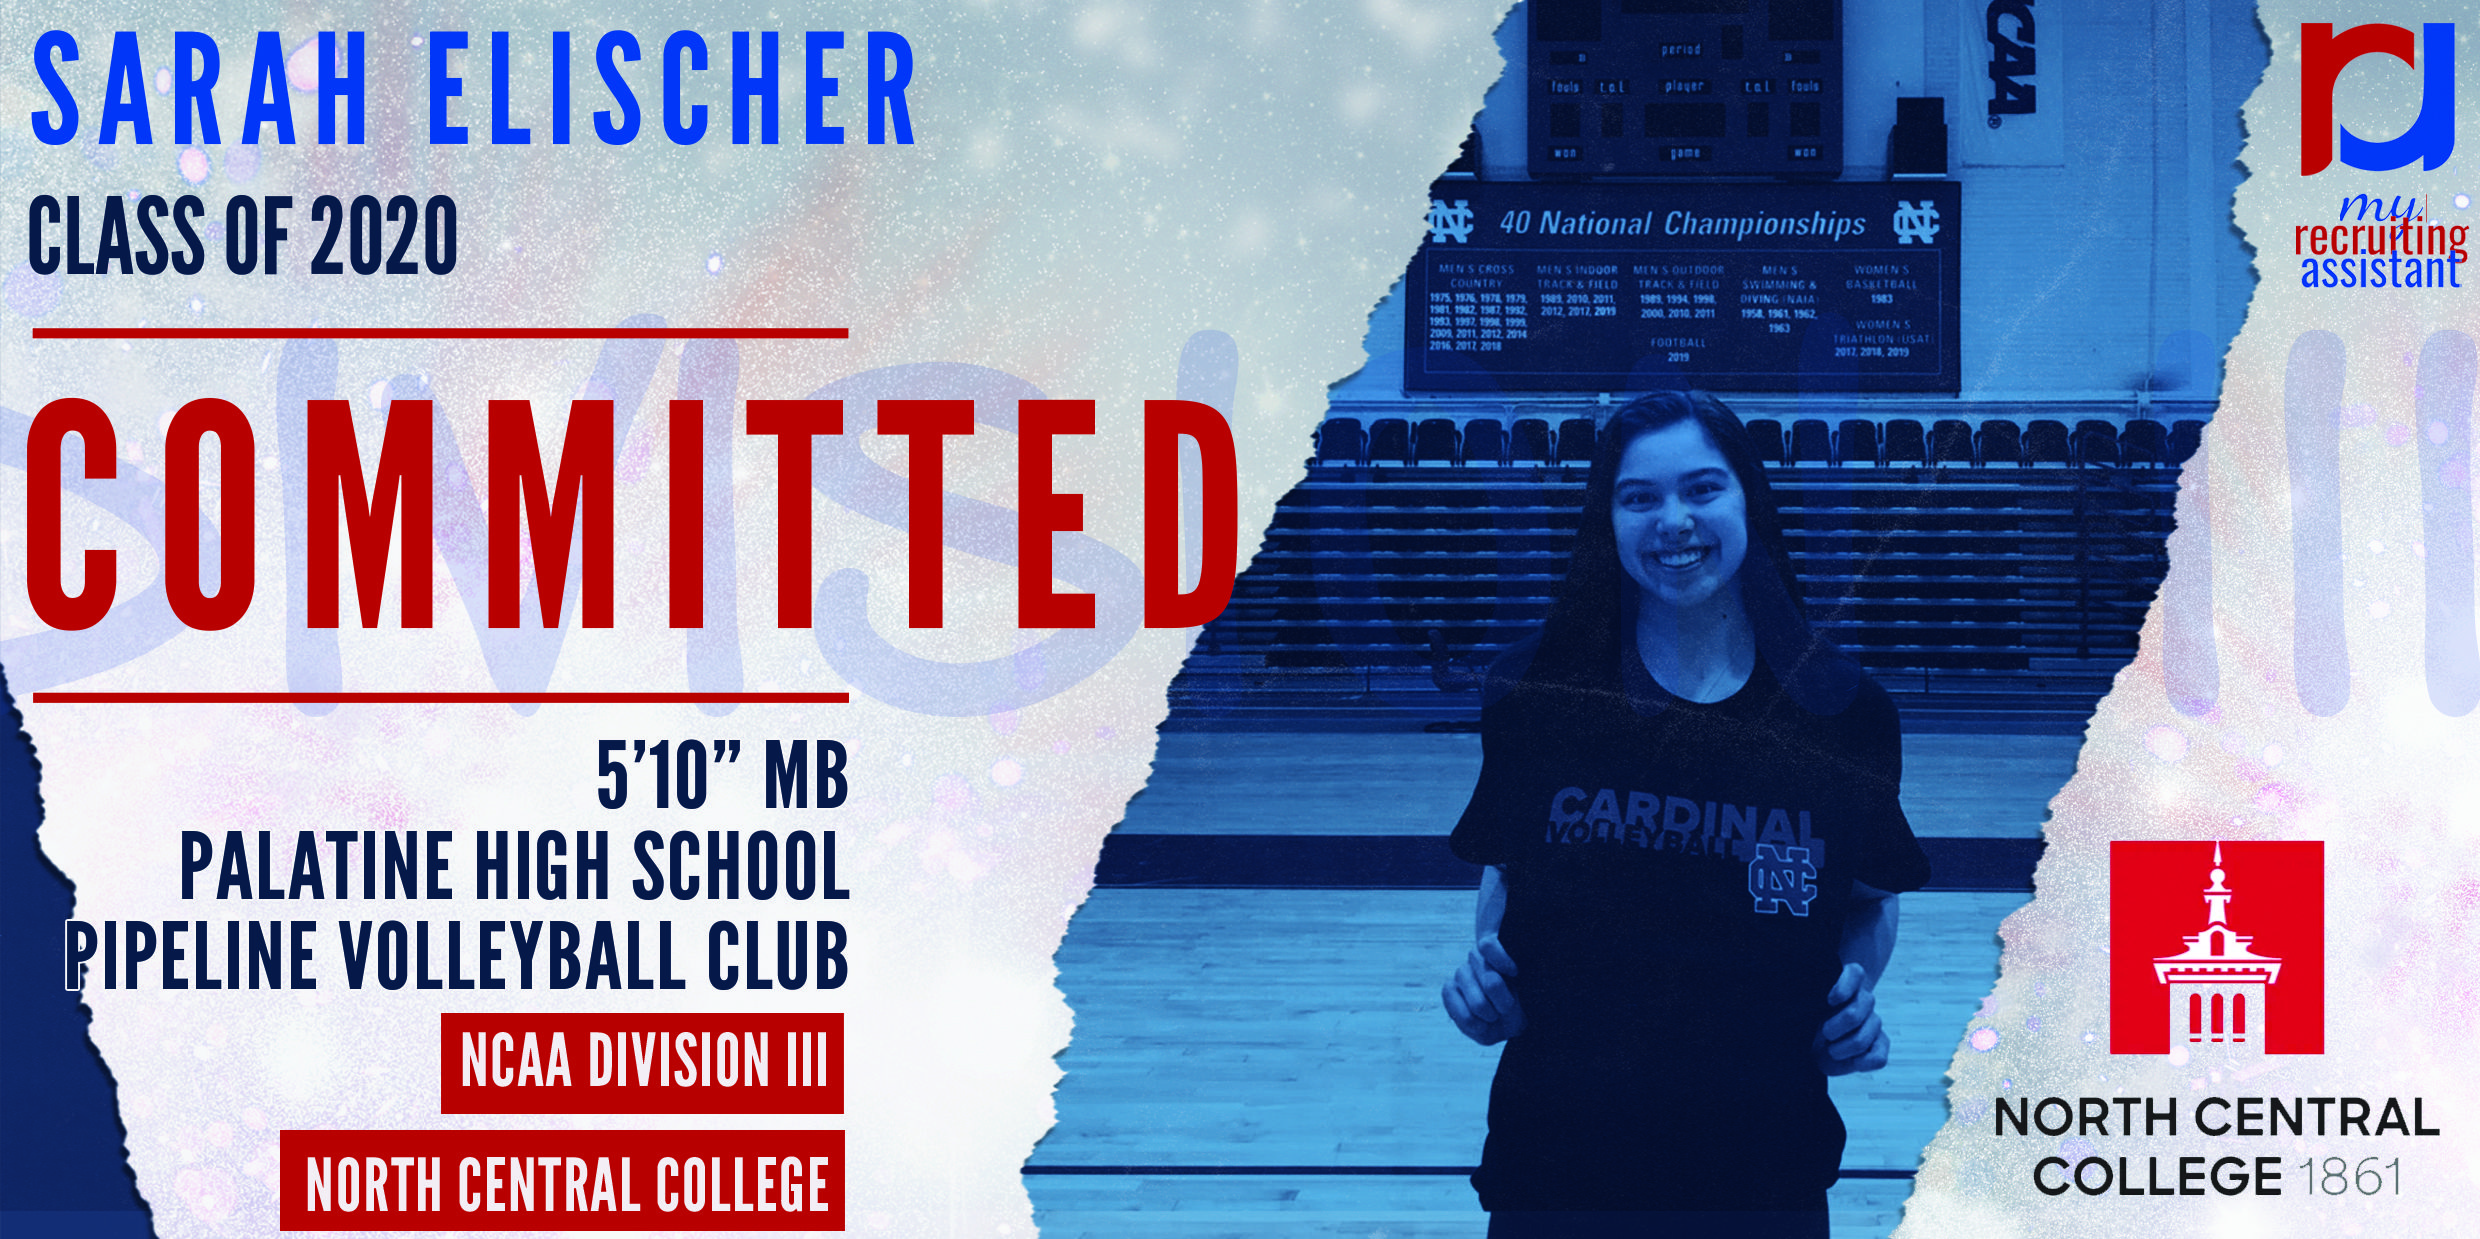 Another March 2020 Mra Commit In 2020 National Championship Volleyball Clubs Commitment